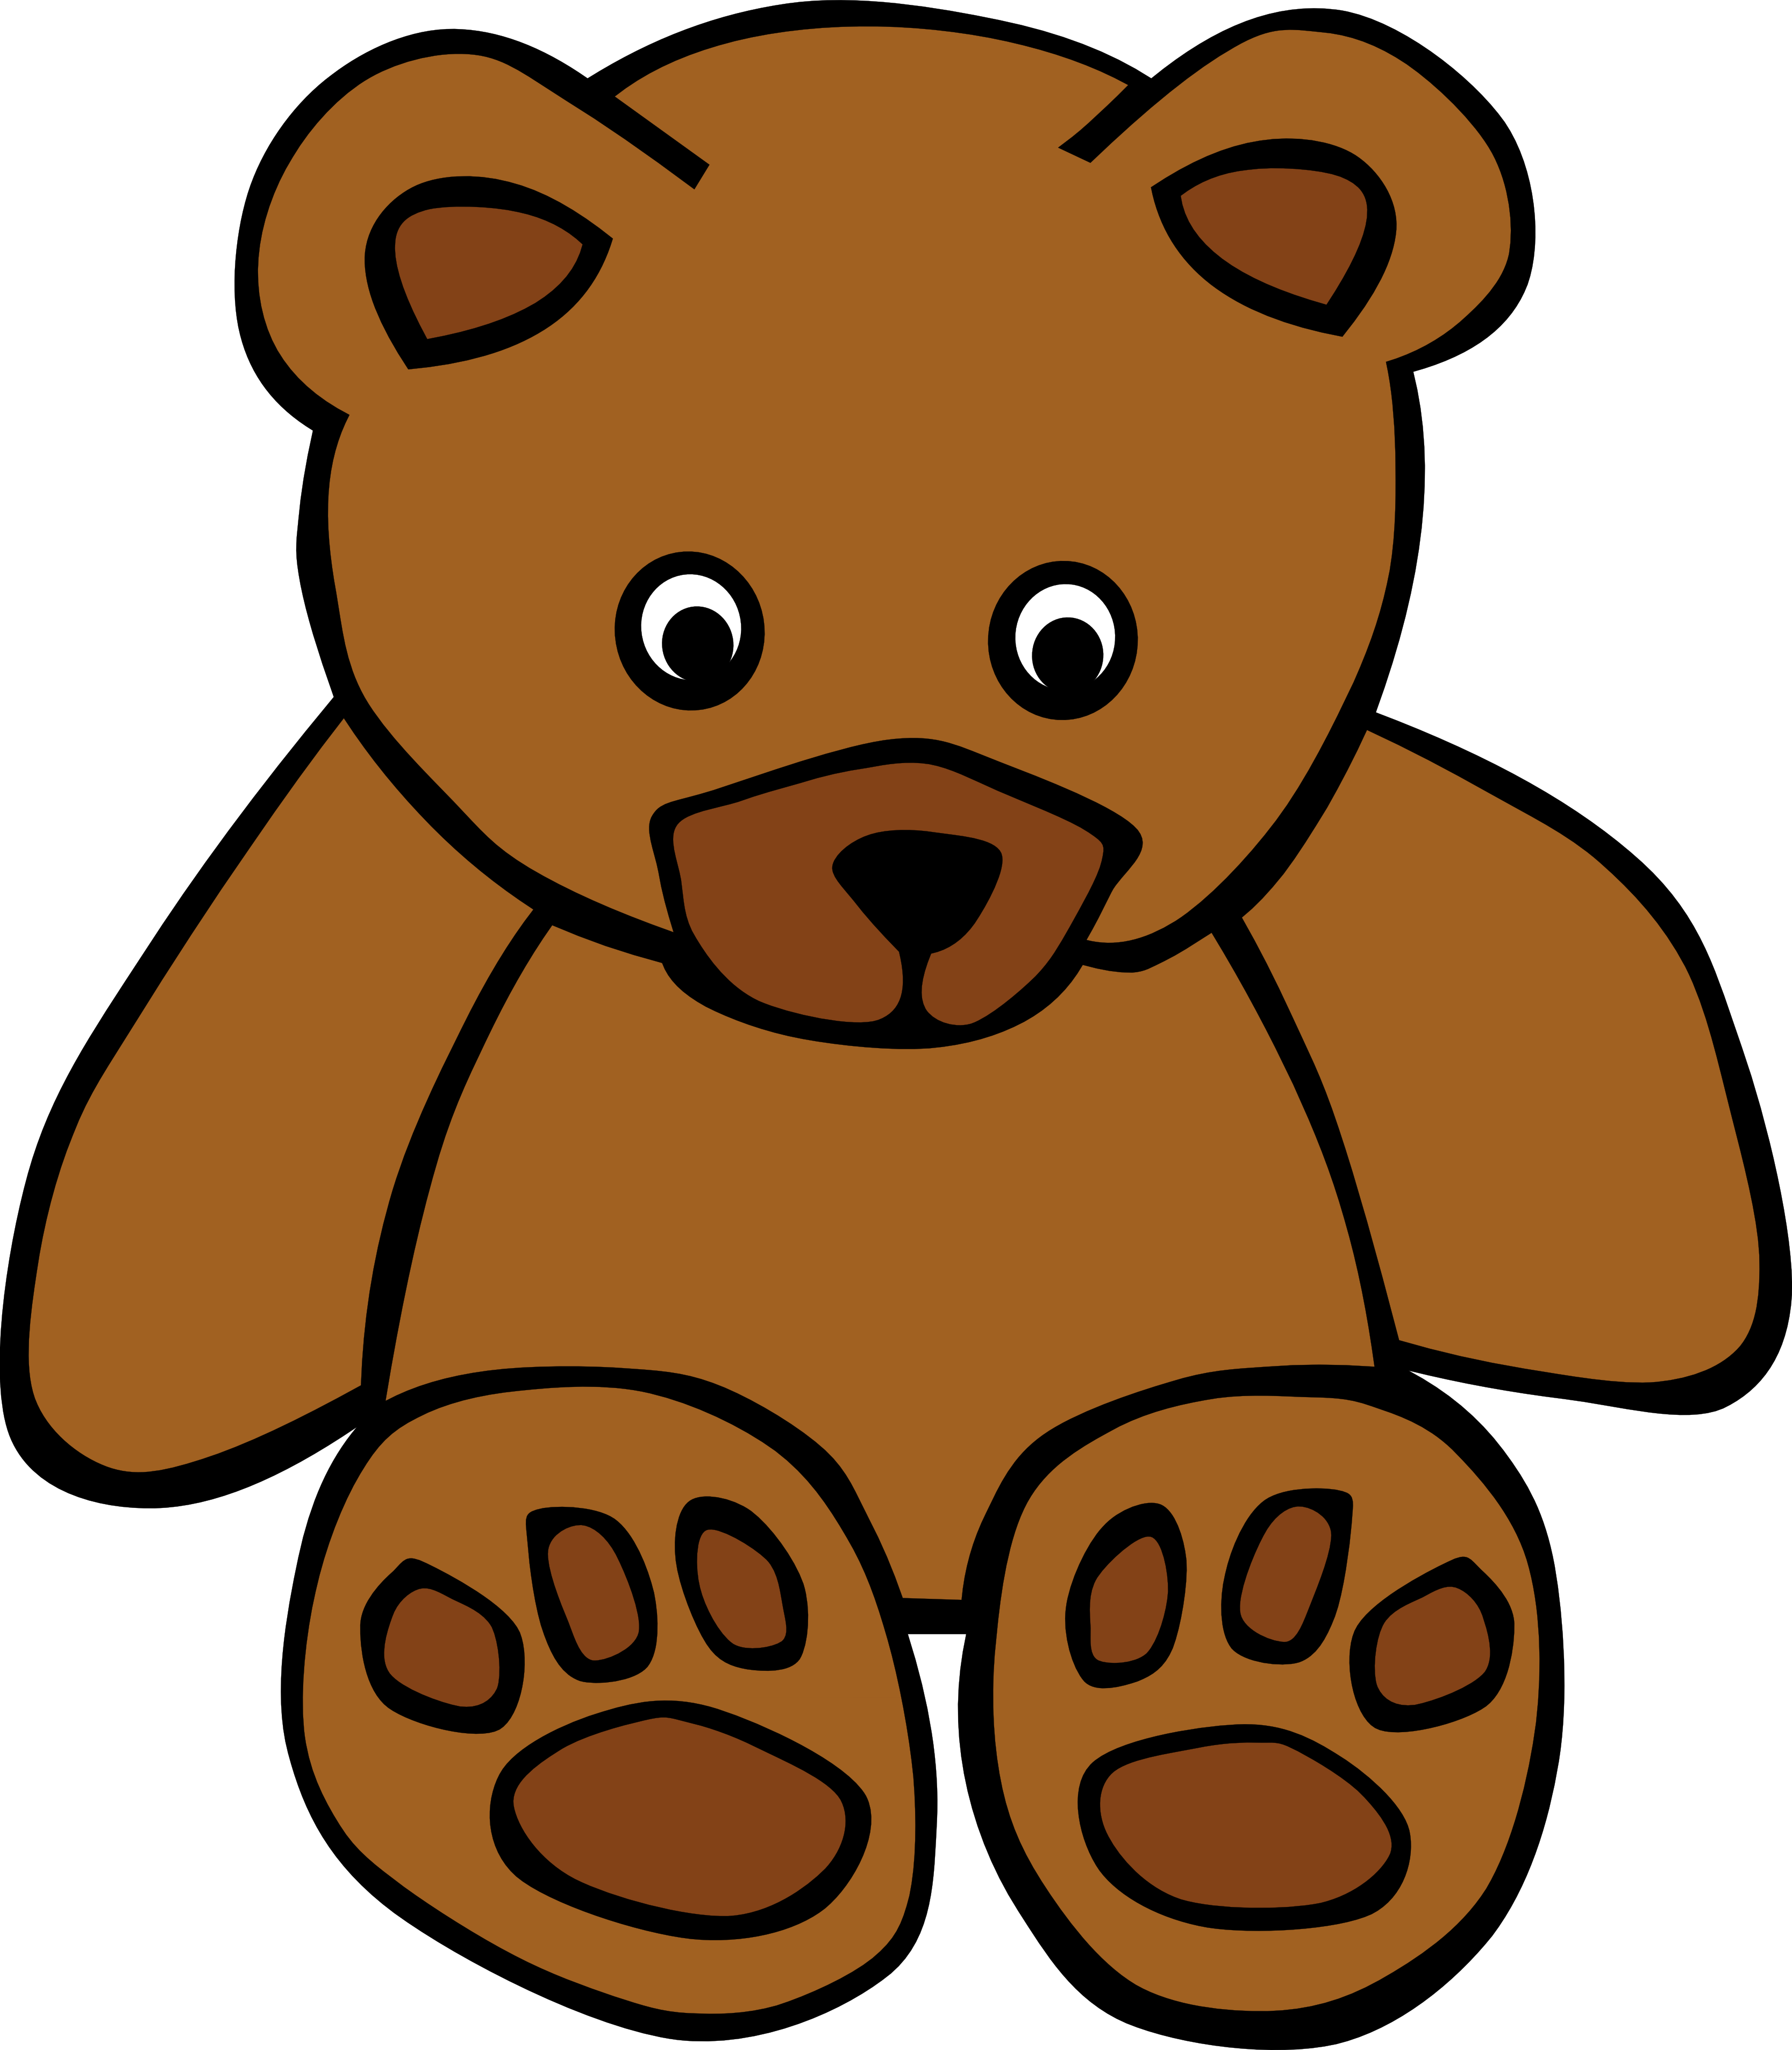 Shhh teddy bear clipart image black and white library Free Bear Preschool Cliparts, Download Free Clip Art, Free ... image black and white library